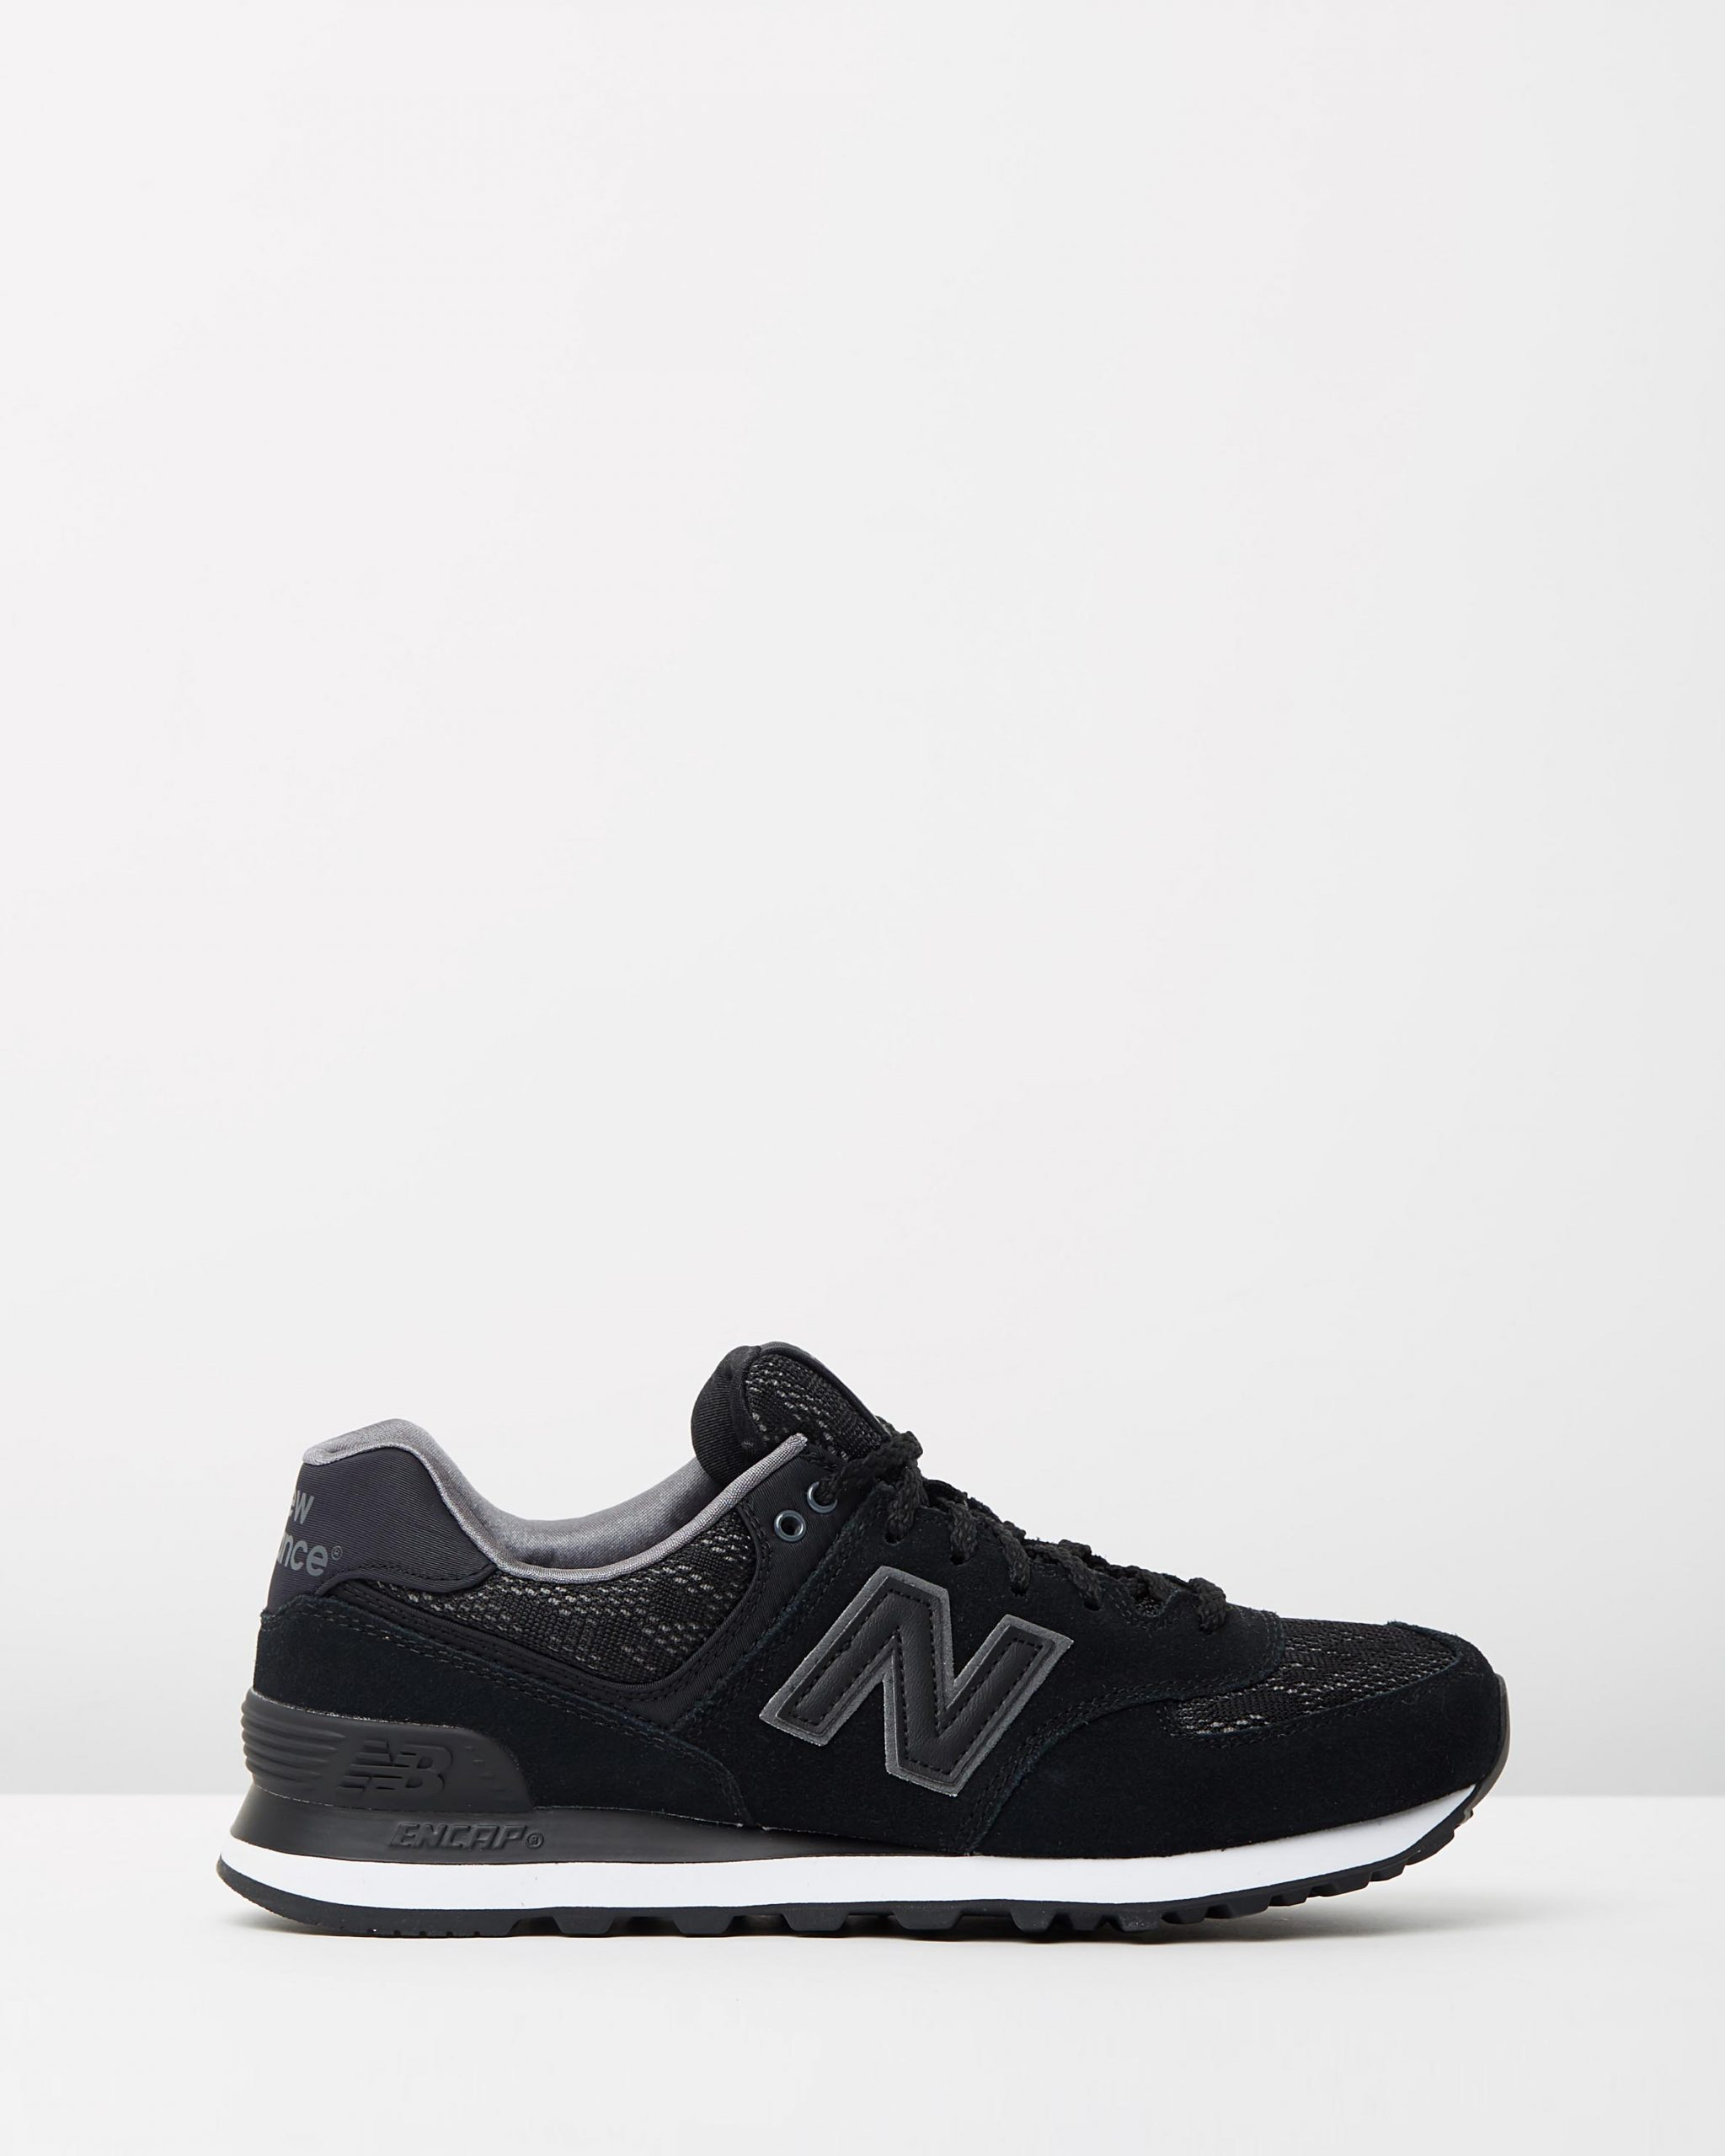 New Balance Women's WL574 Black Lace